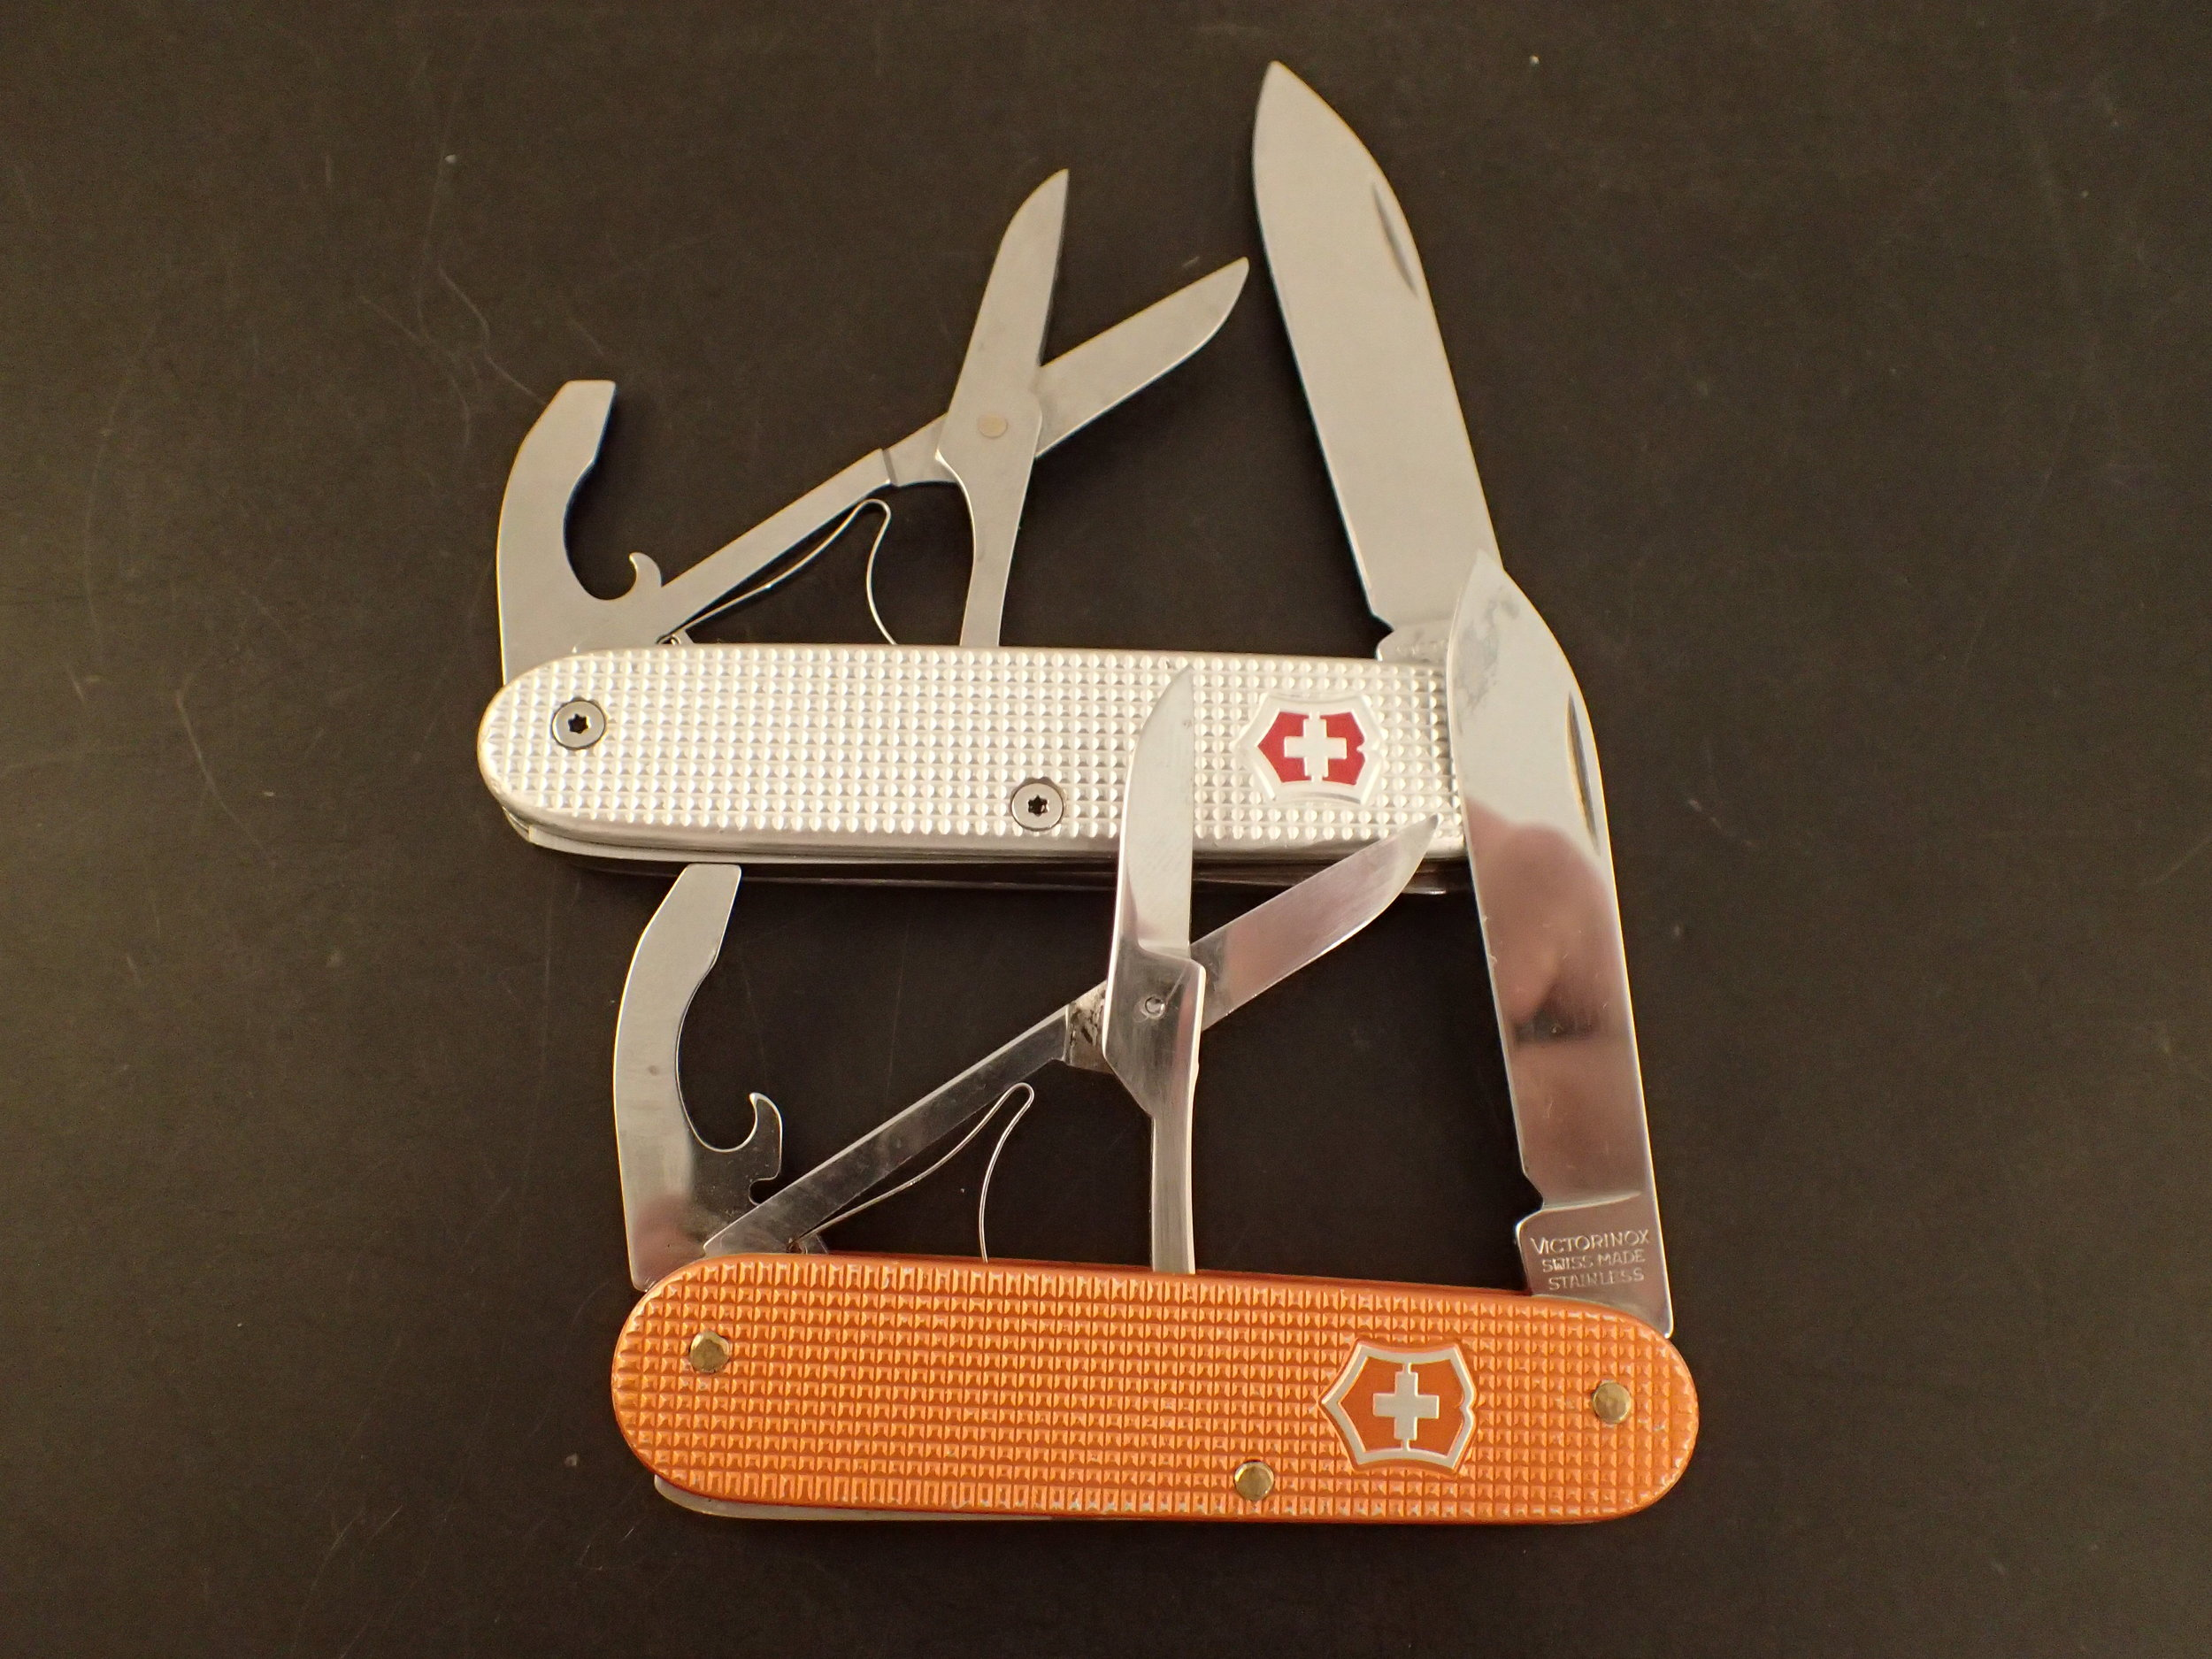 No frills. Two custom Voyageurs, a 93 mm (silver) and an 84 mm (orange), both perfectly illustrative of the 95% Rule.